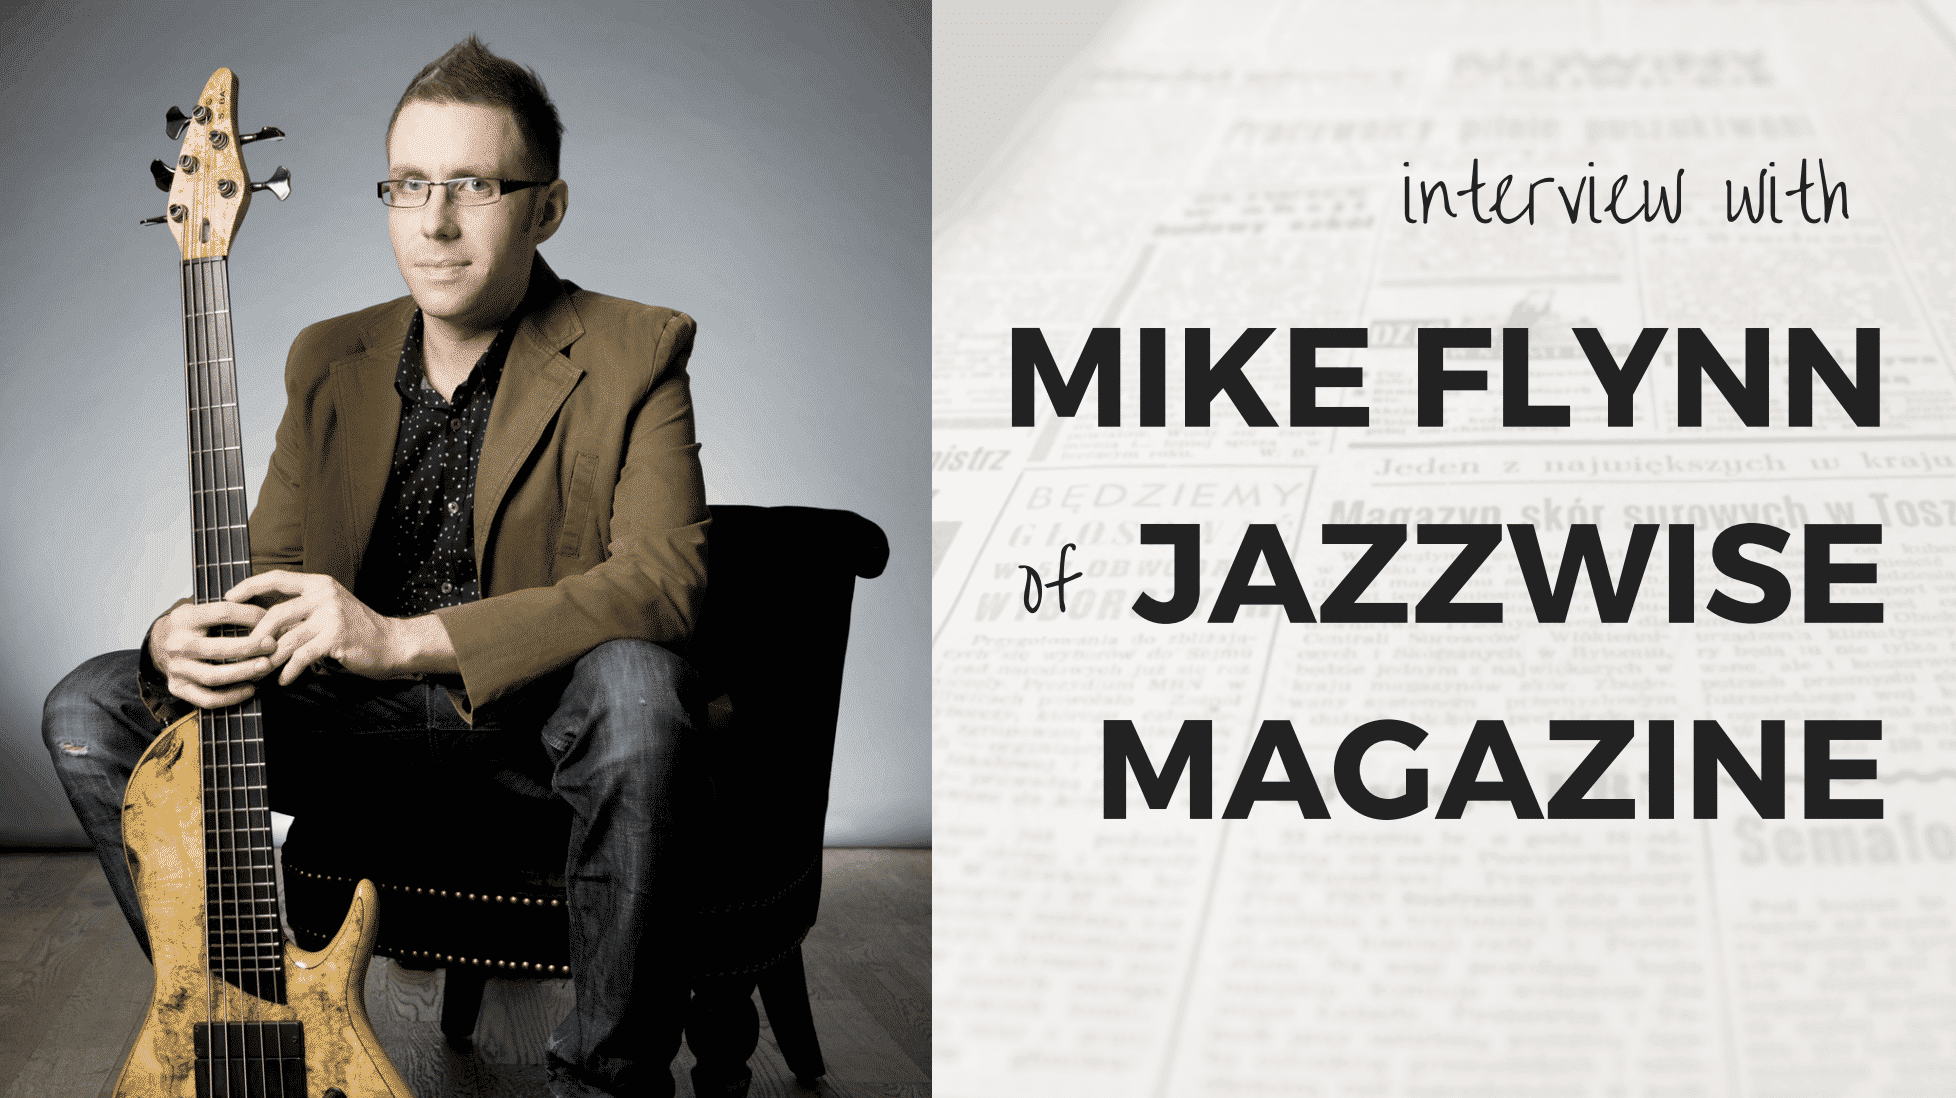 Interview with Mike Flynn of Jazzwise Magazine